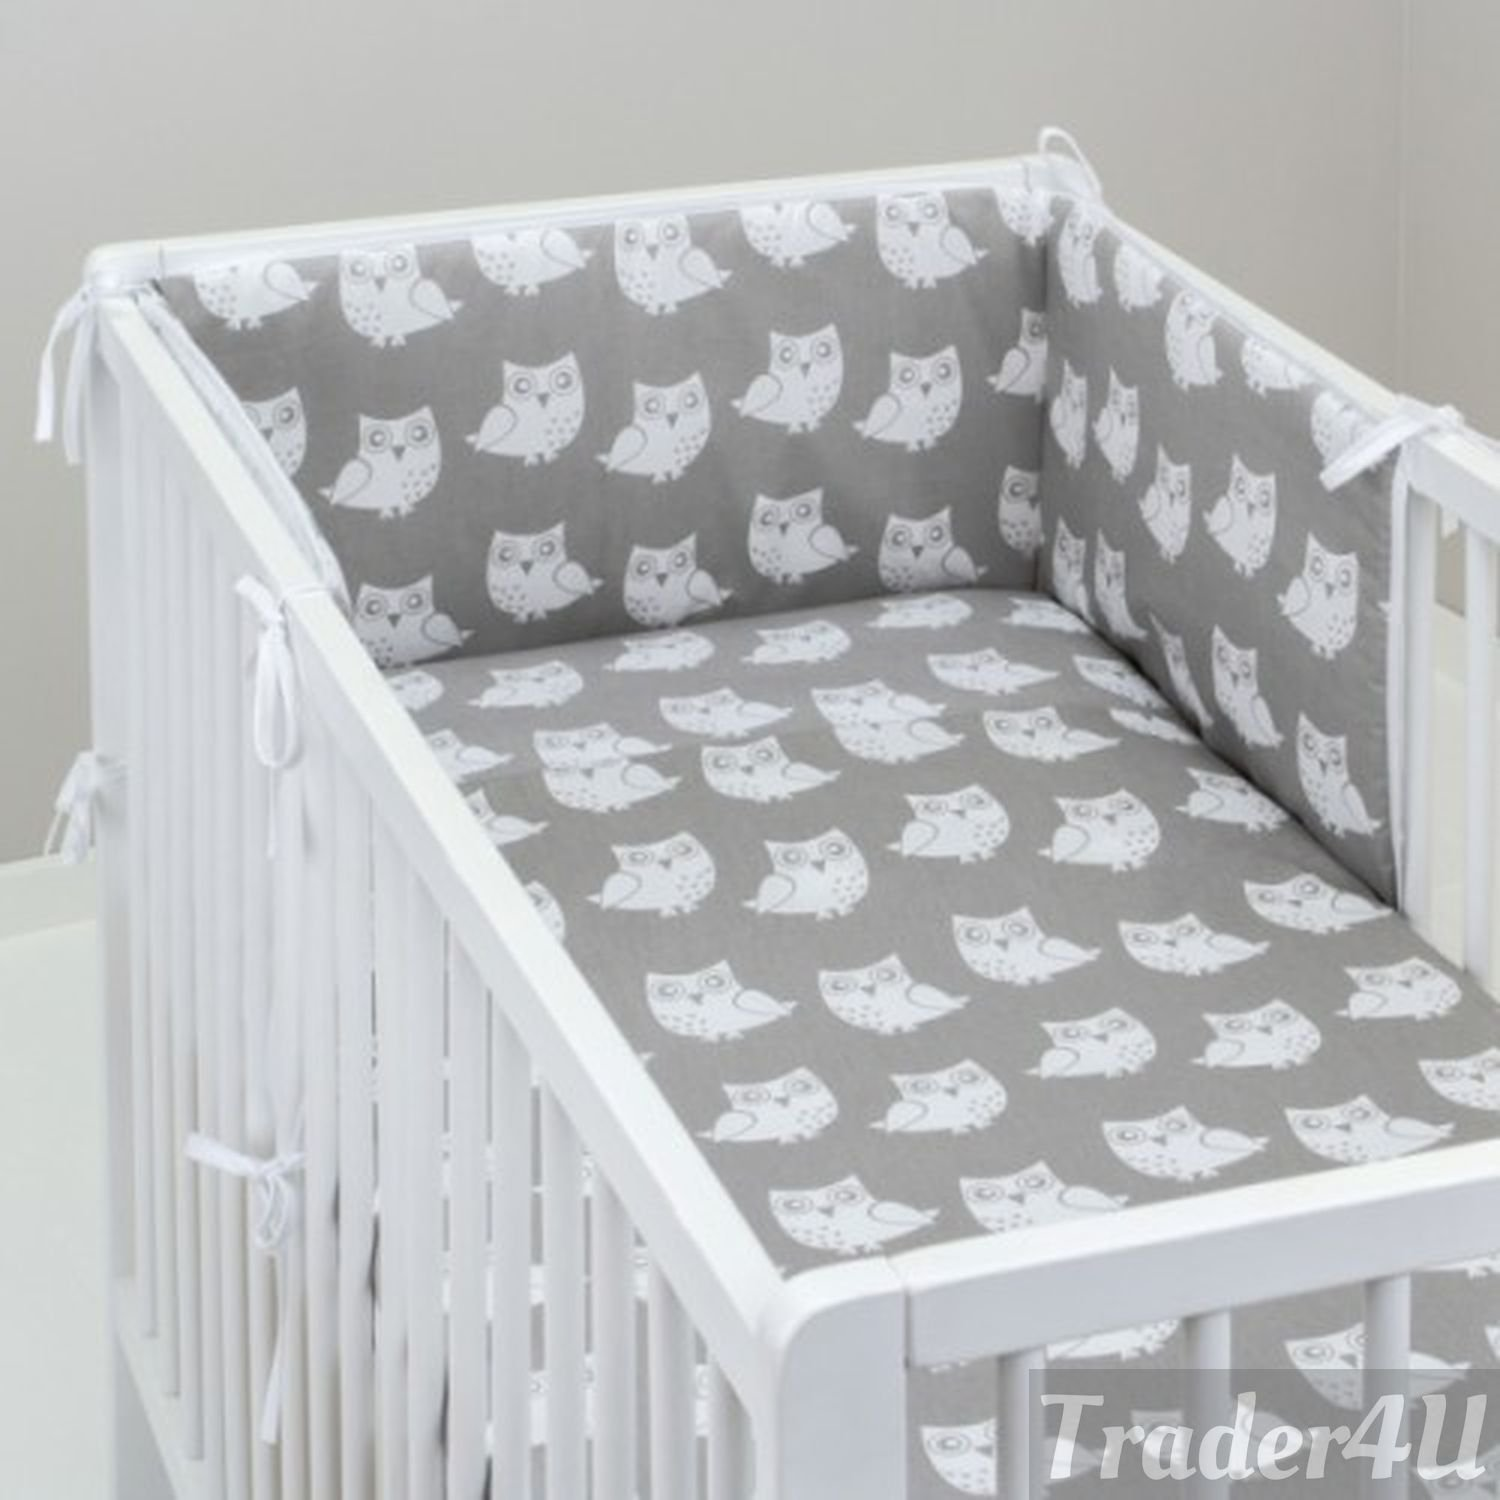 Fit to Cot Bed 140x70 cm, Butterflay//Ladybugs//Flowers on White MillaLu 3 Pcs Baby Nursery Bedding Set fit to Cot 120x60cm or Cot Bed 140x70cm Padded Bumper